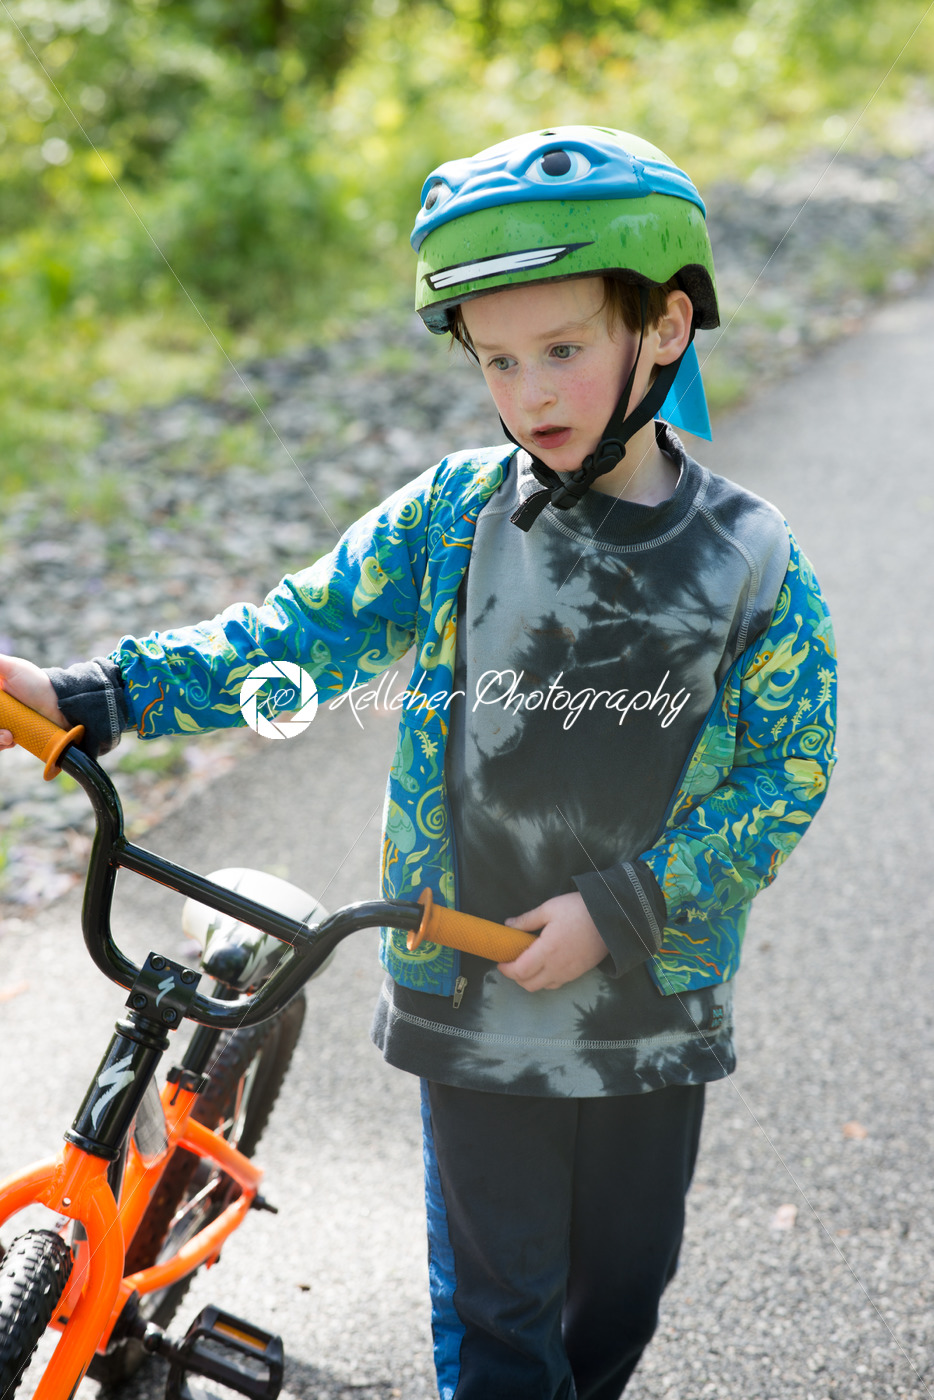 Young Boy Riding Bike on paved trail - Kelleher Photography Store